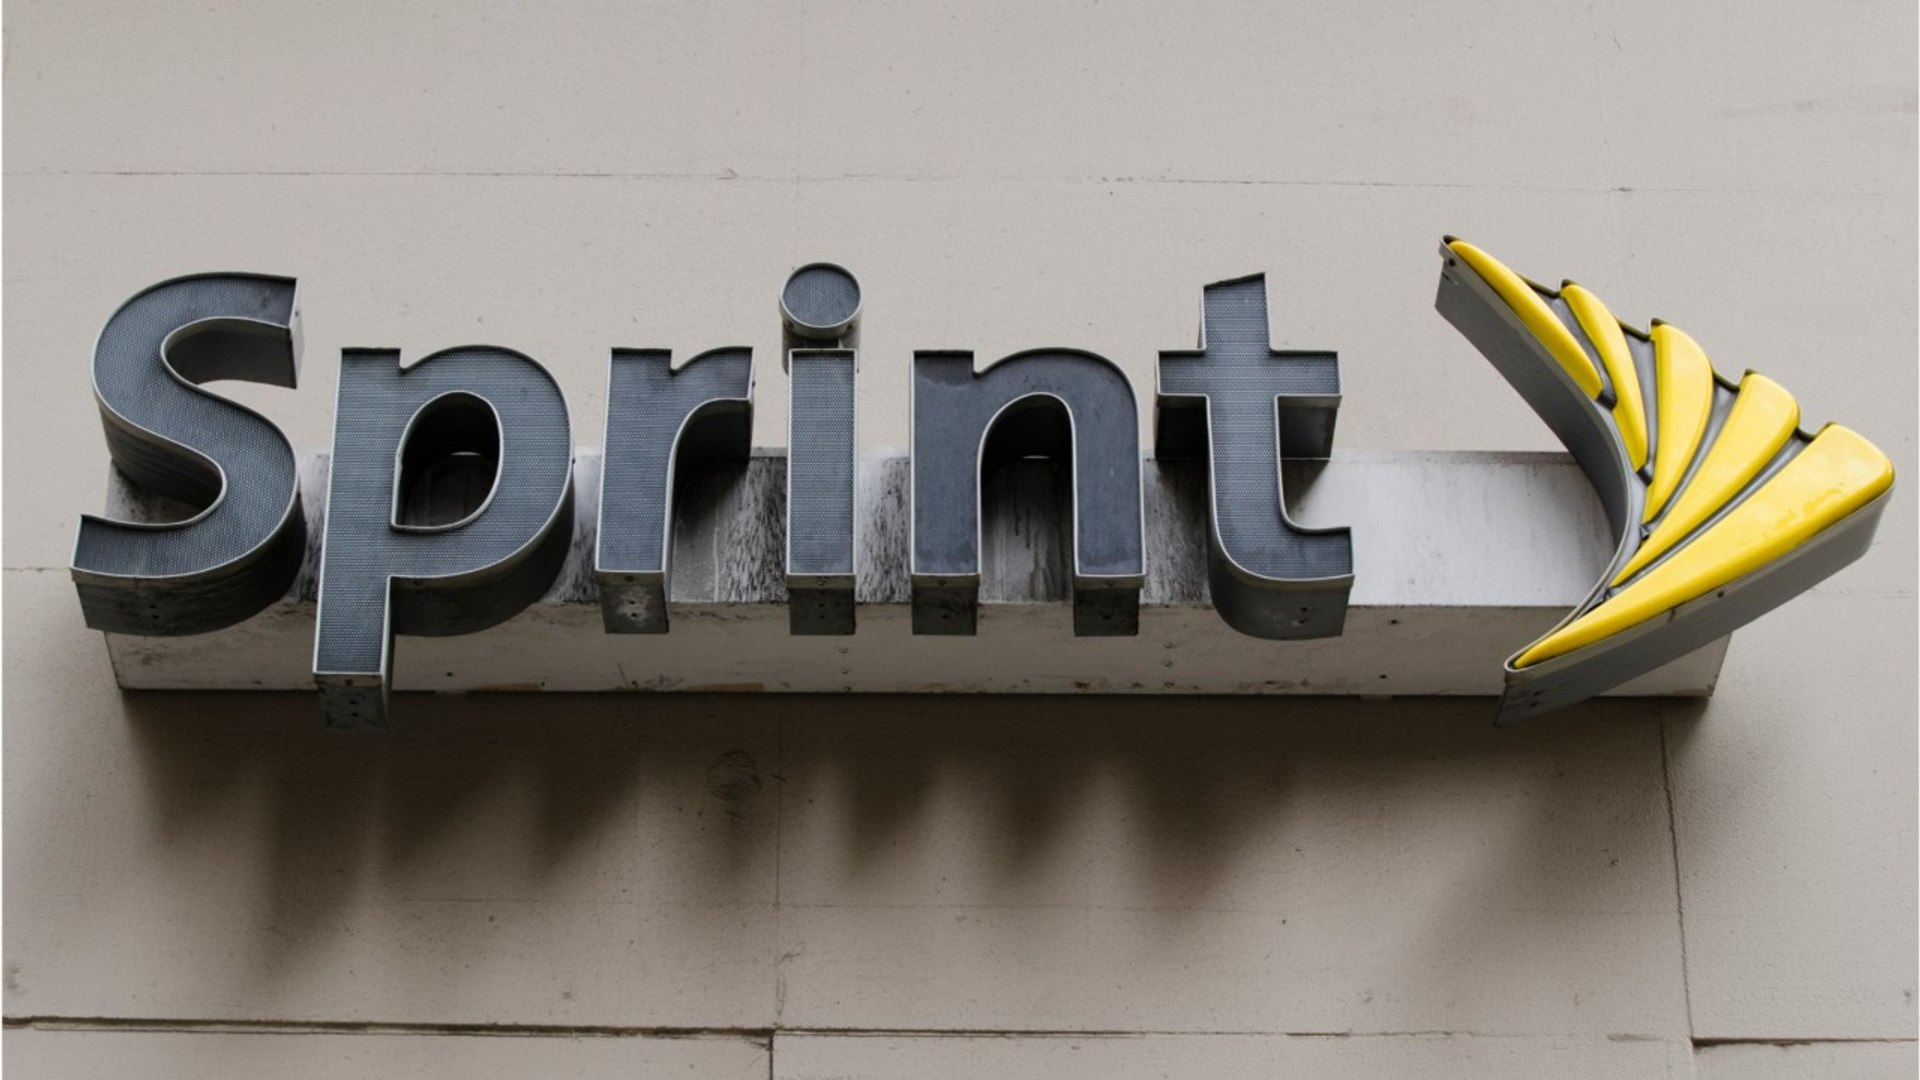 Sprint Hopes To Have 5G By 2019